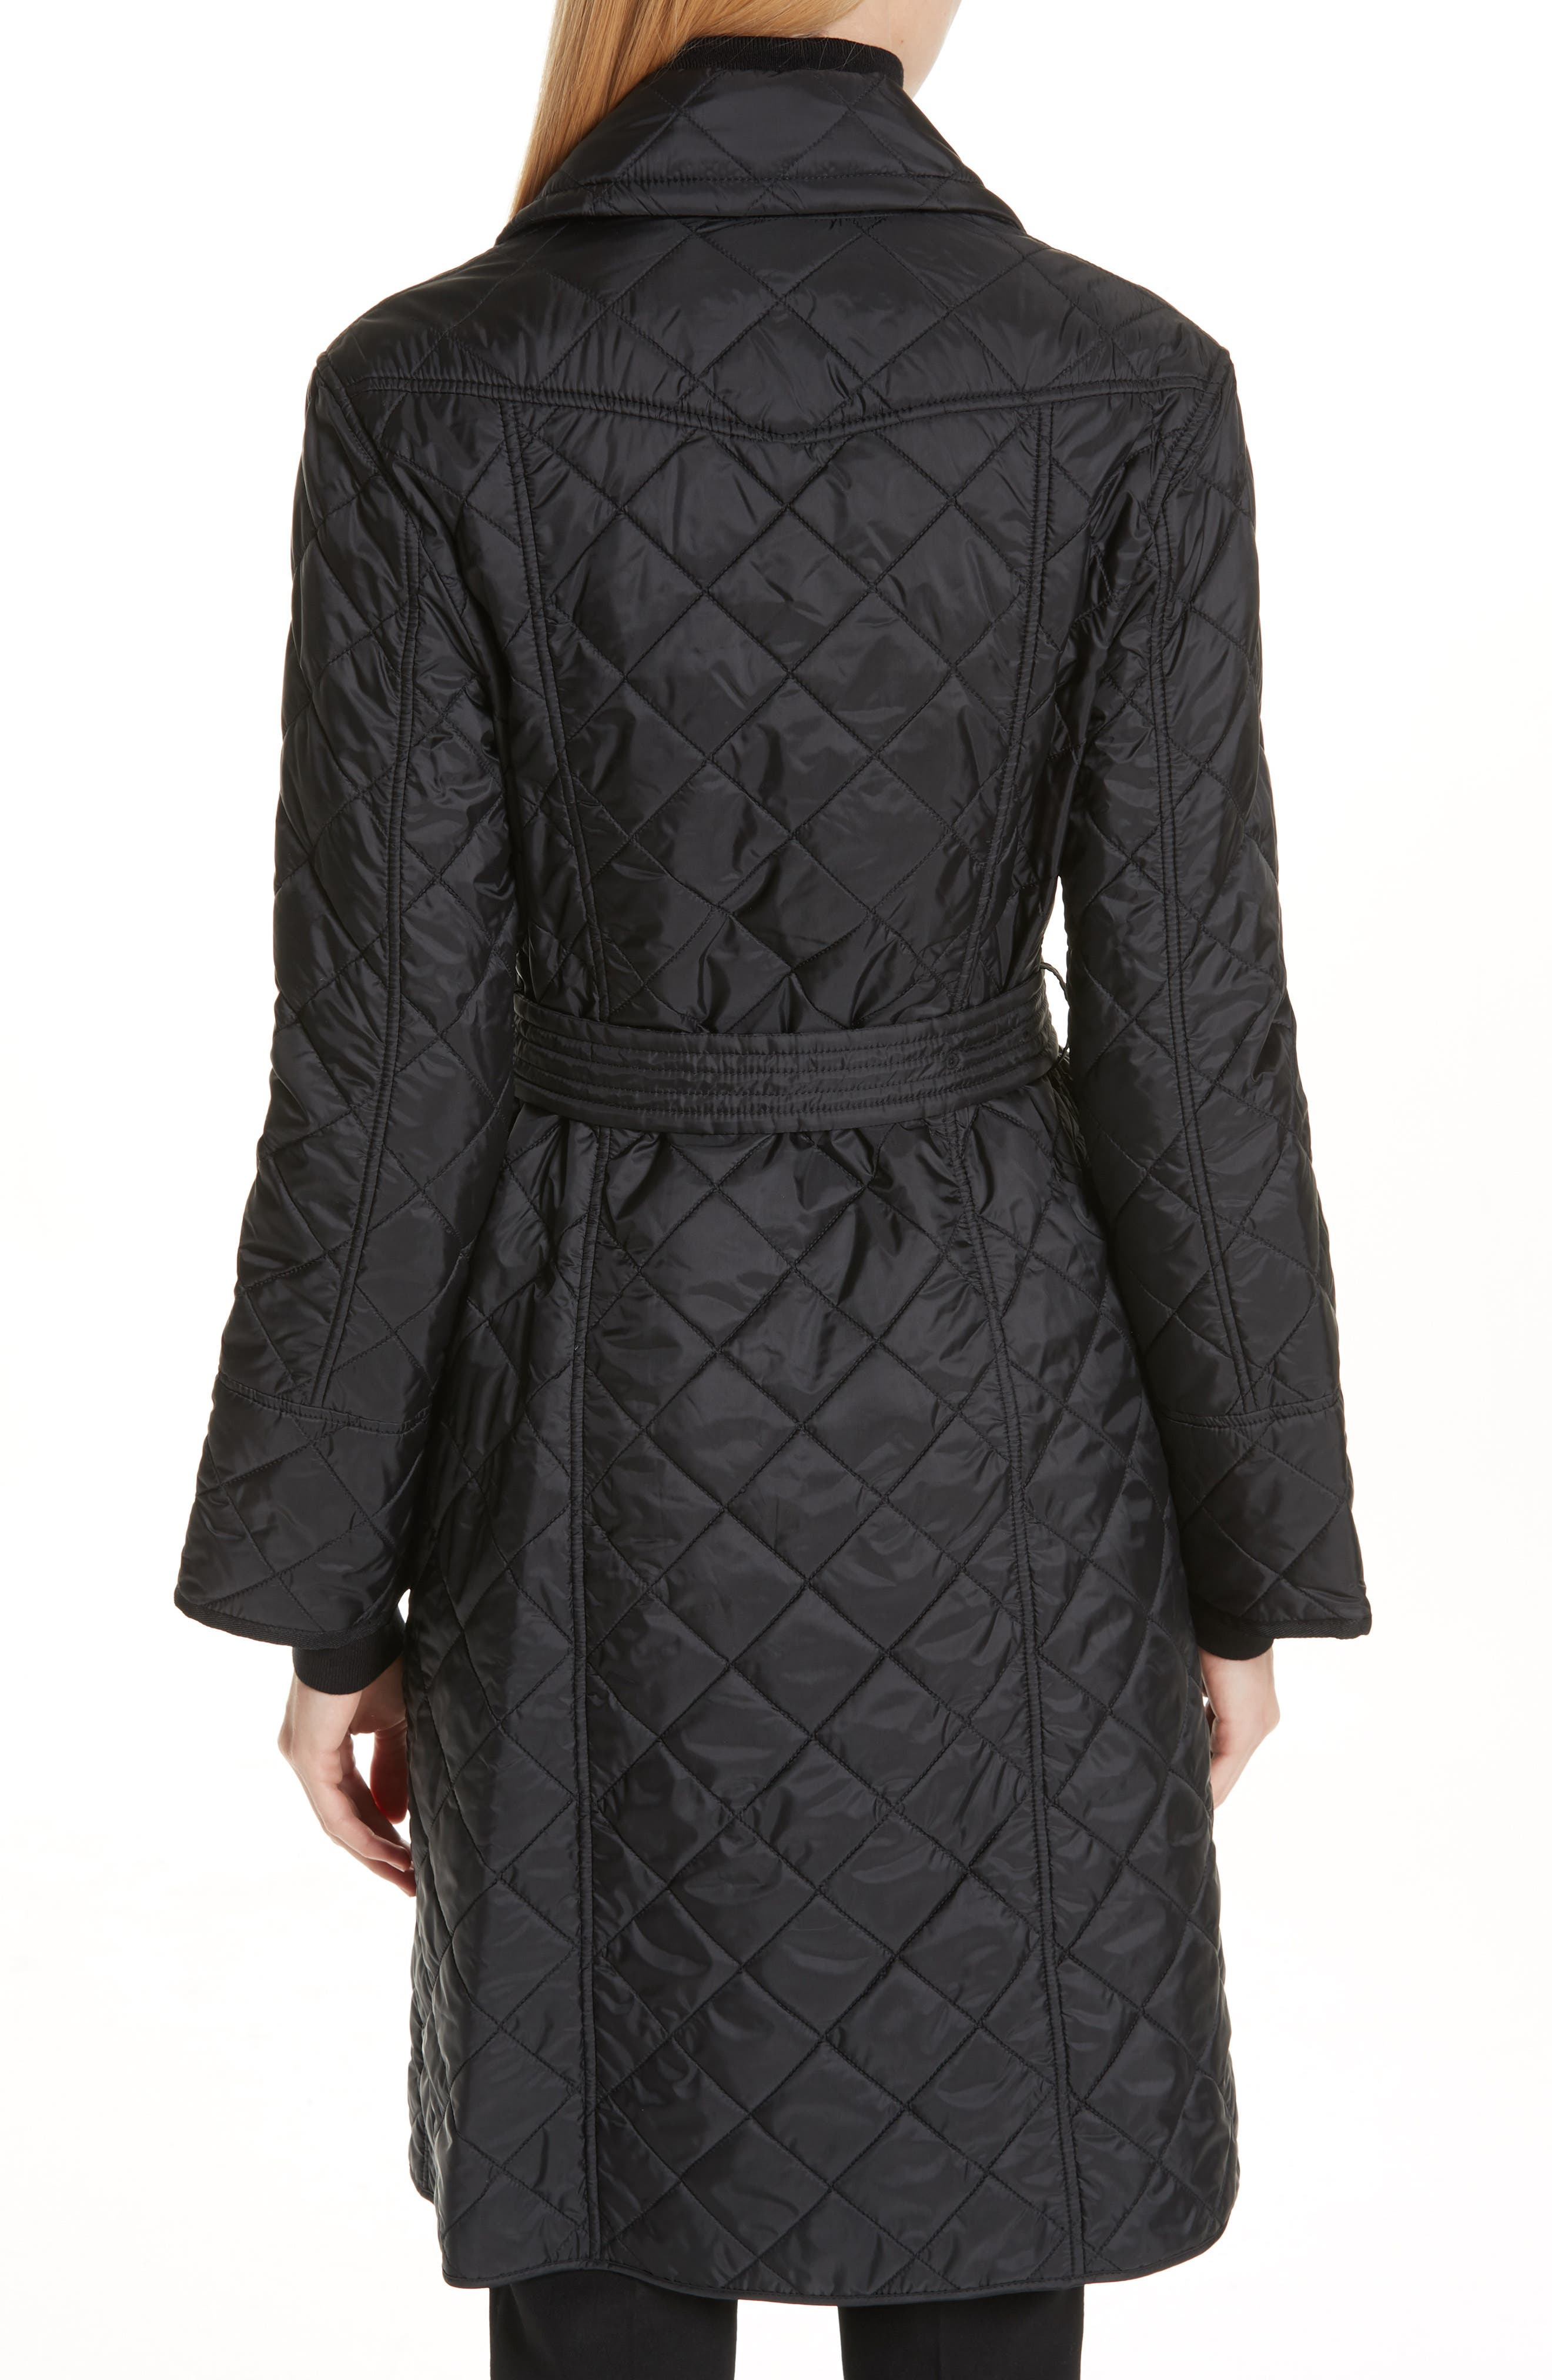 BURBERRY, Horberie Quilted Trench Coat, Alternate thumbnail 2, color, BLACK